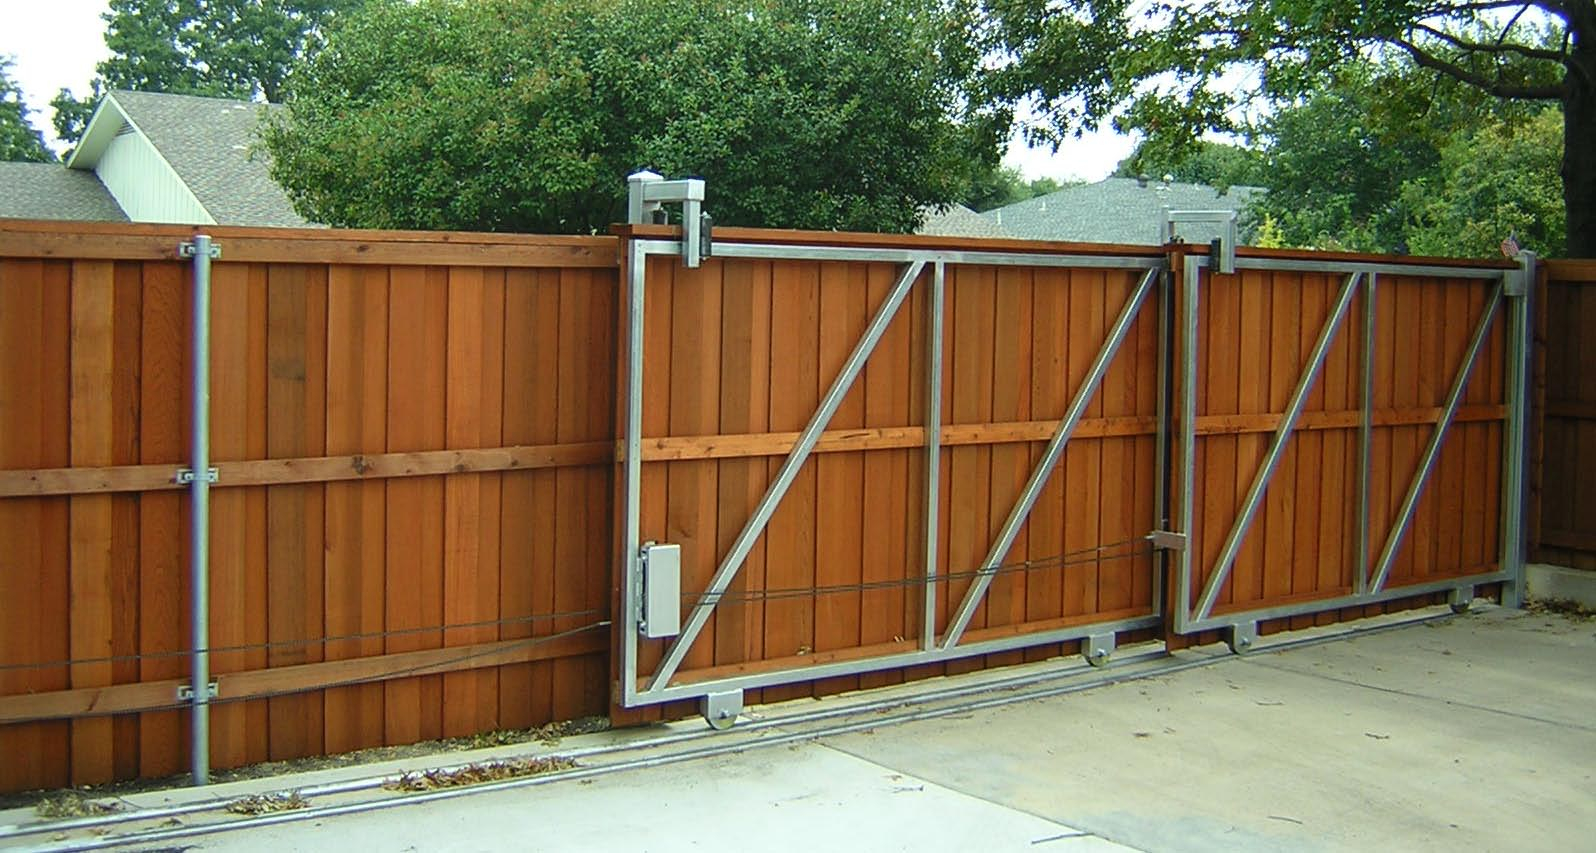 Wood Fence Gate Durability Is Very Important Ducksdailyblog Fence within 13 Clever Ways How to Improve Gate For Backyard Fence